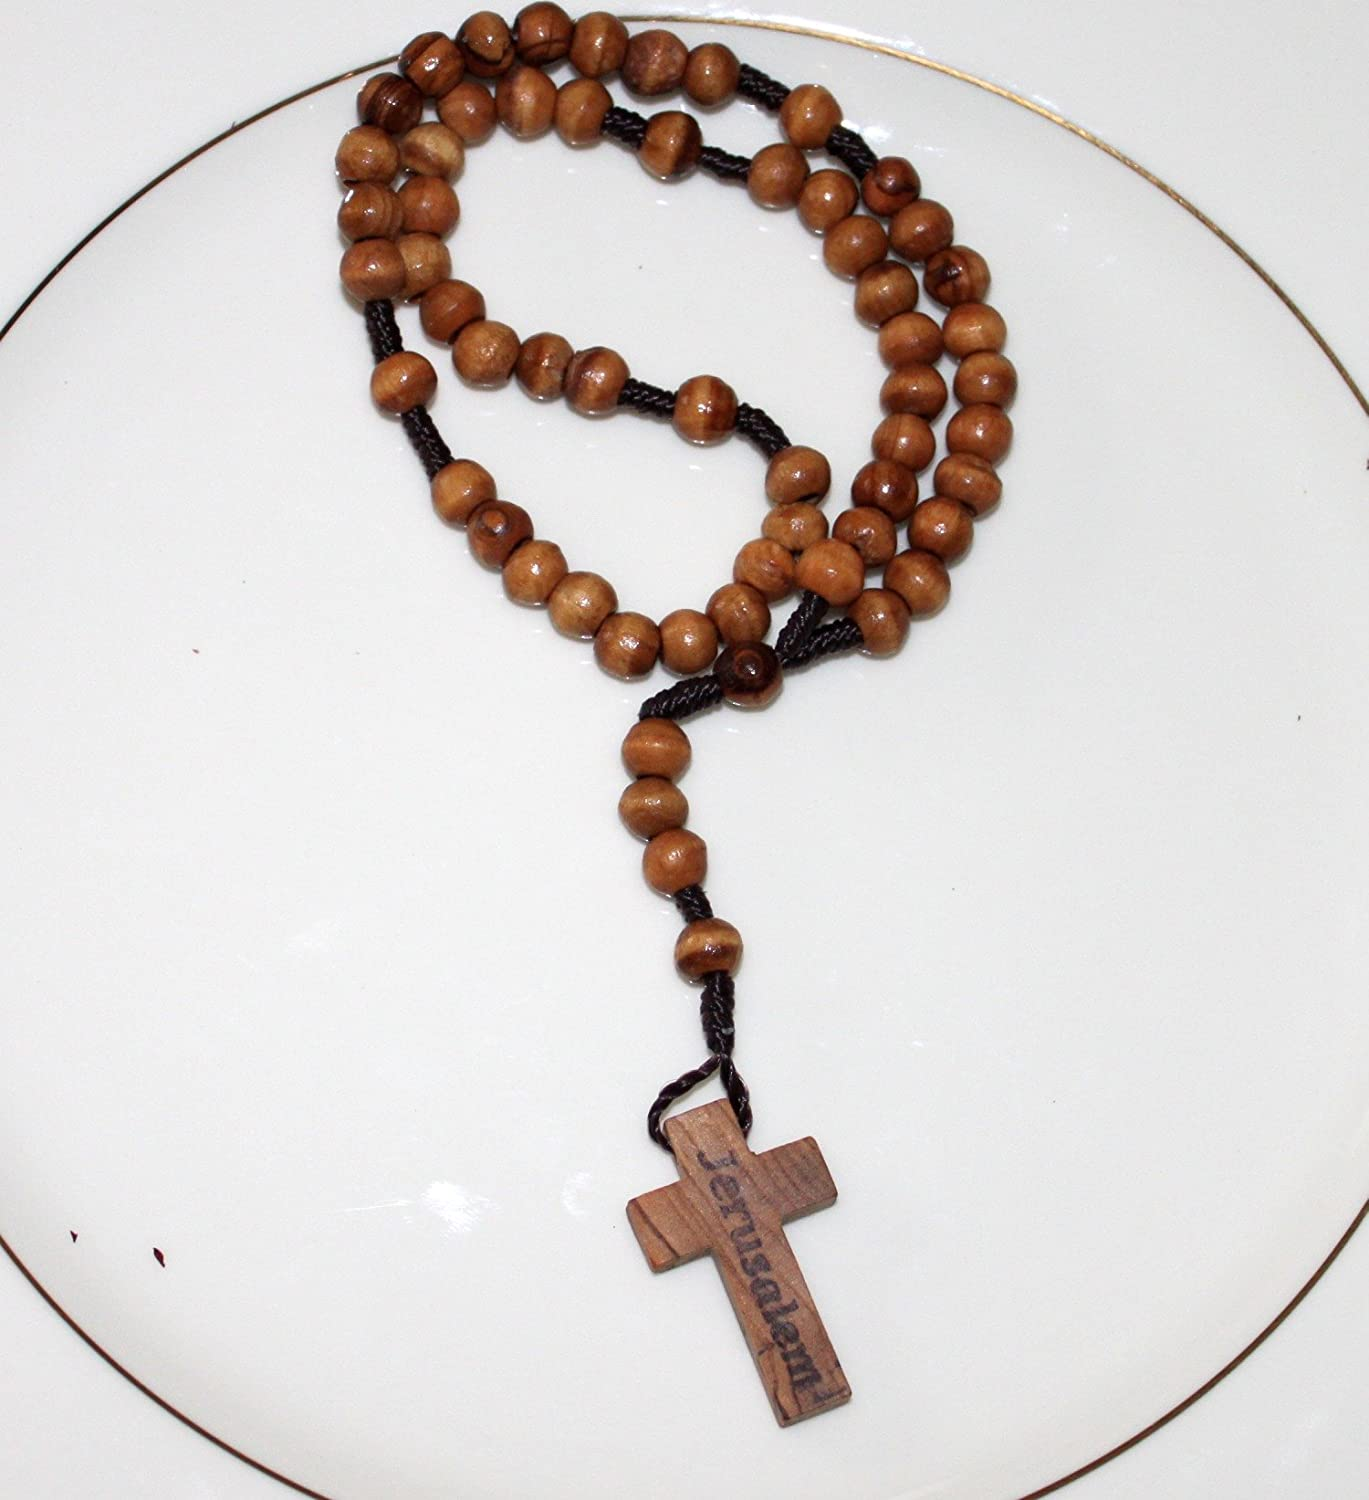 FavorOnline Original Jerusalem Olive Wood Rosary From The Holy Land In A Cellophane Pouch 6066686